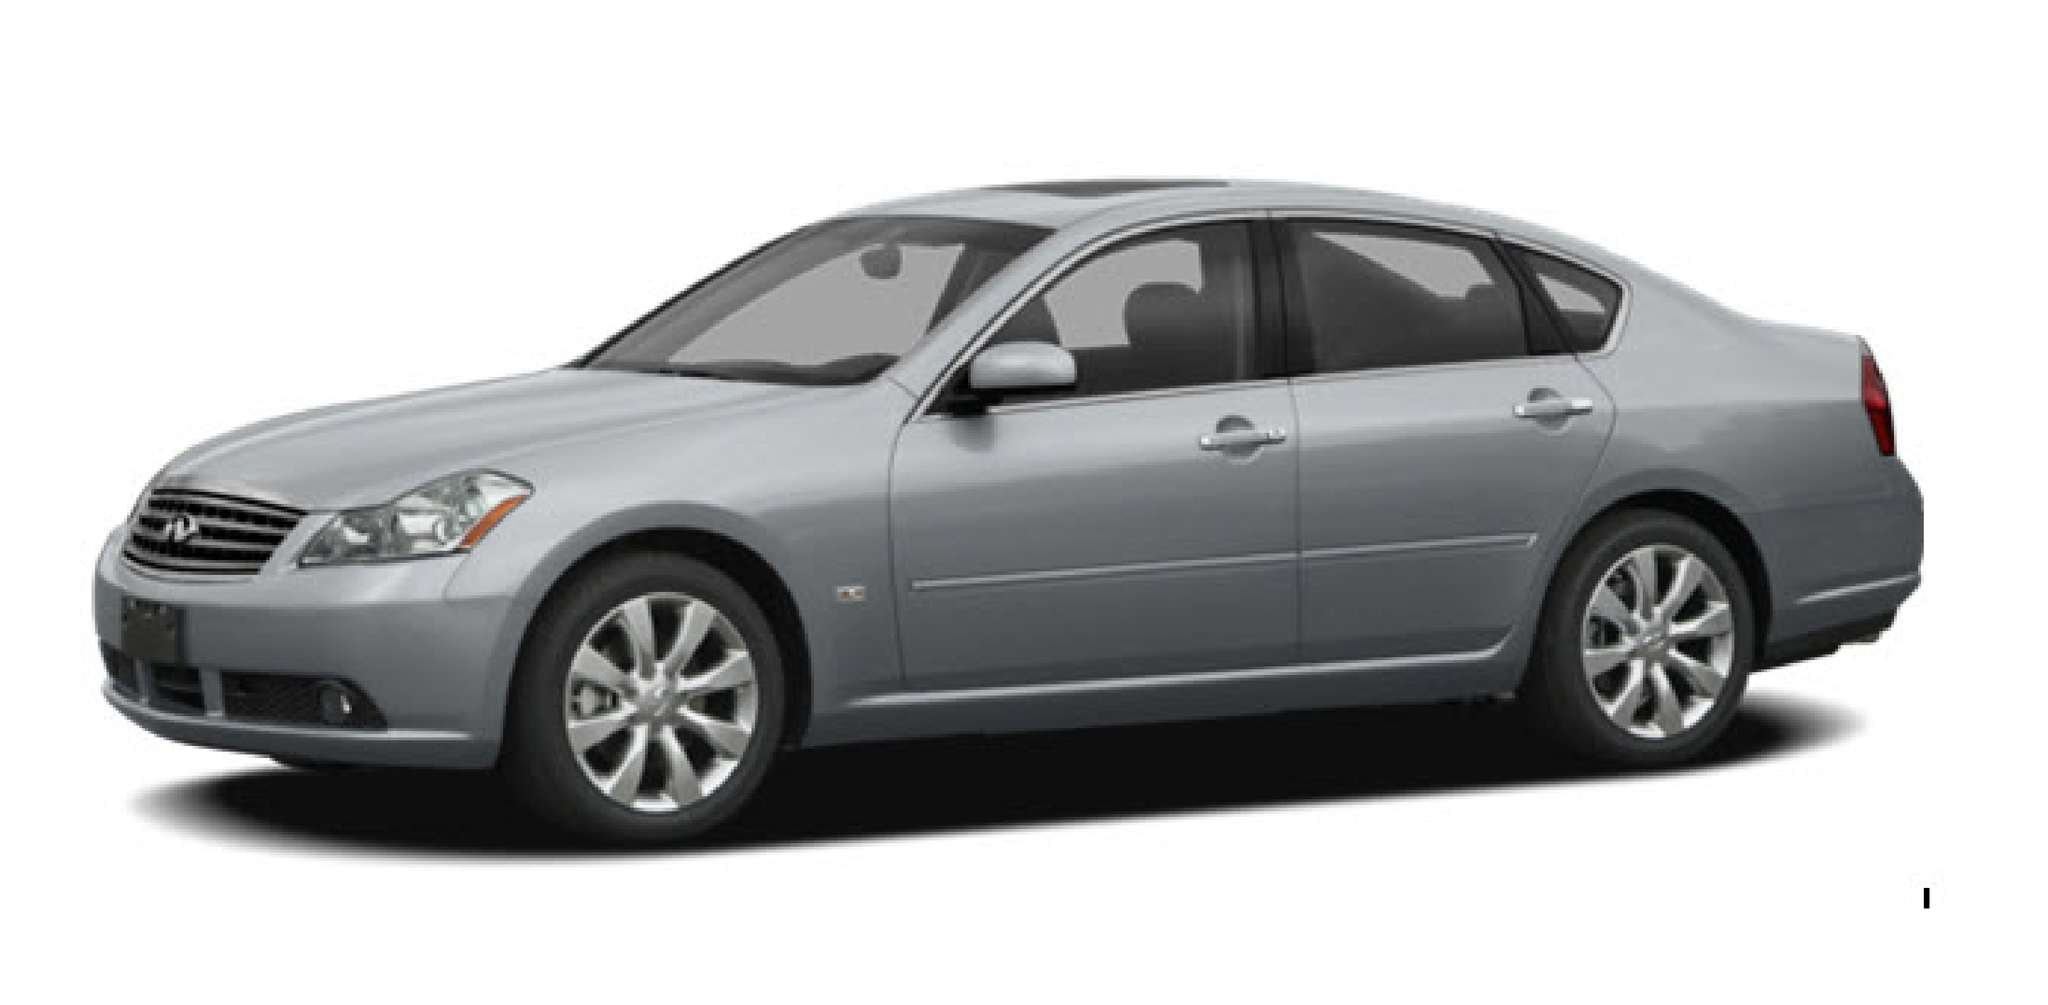 One suspect took off in the victim's car, a 2006 four-door silver Infinity M35 with tinted windows, a broken front passenger windown and a missing front grill. The Manitoba licence plate number is GVJ 174.